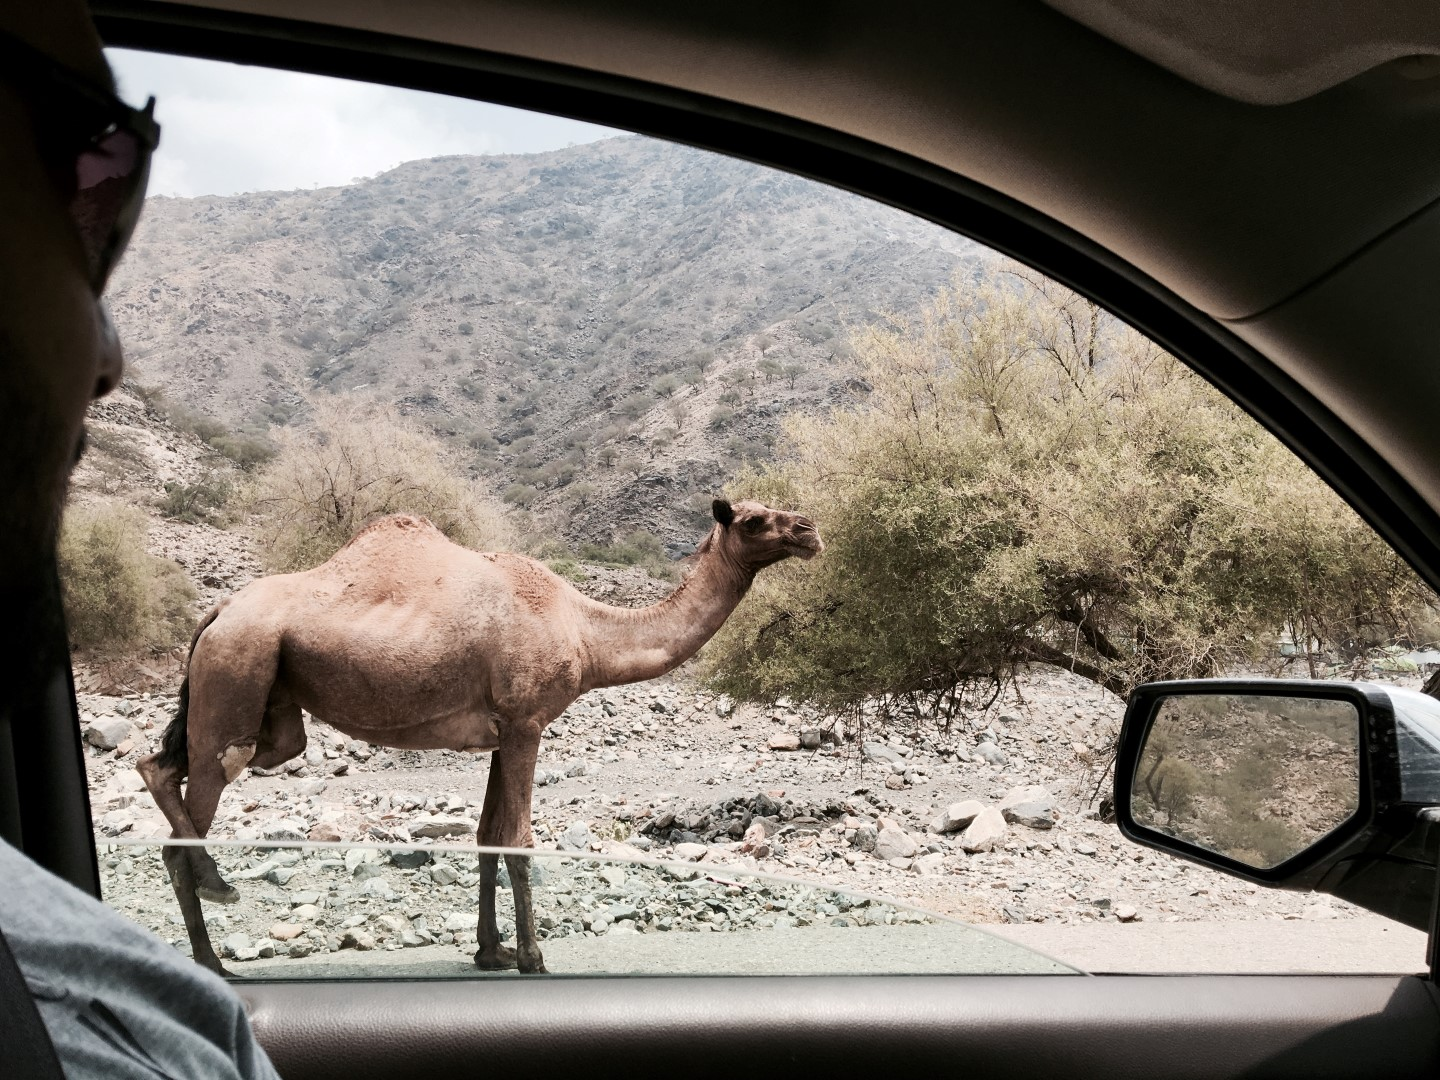 A Road-trip to Al Baha, Abha and back to Yanbu